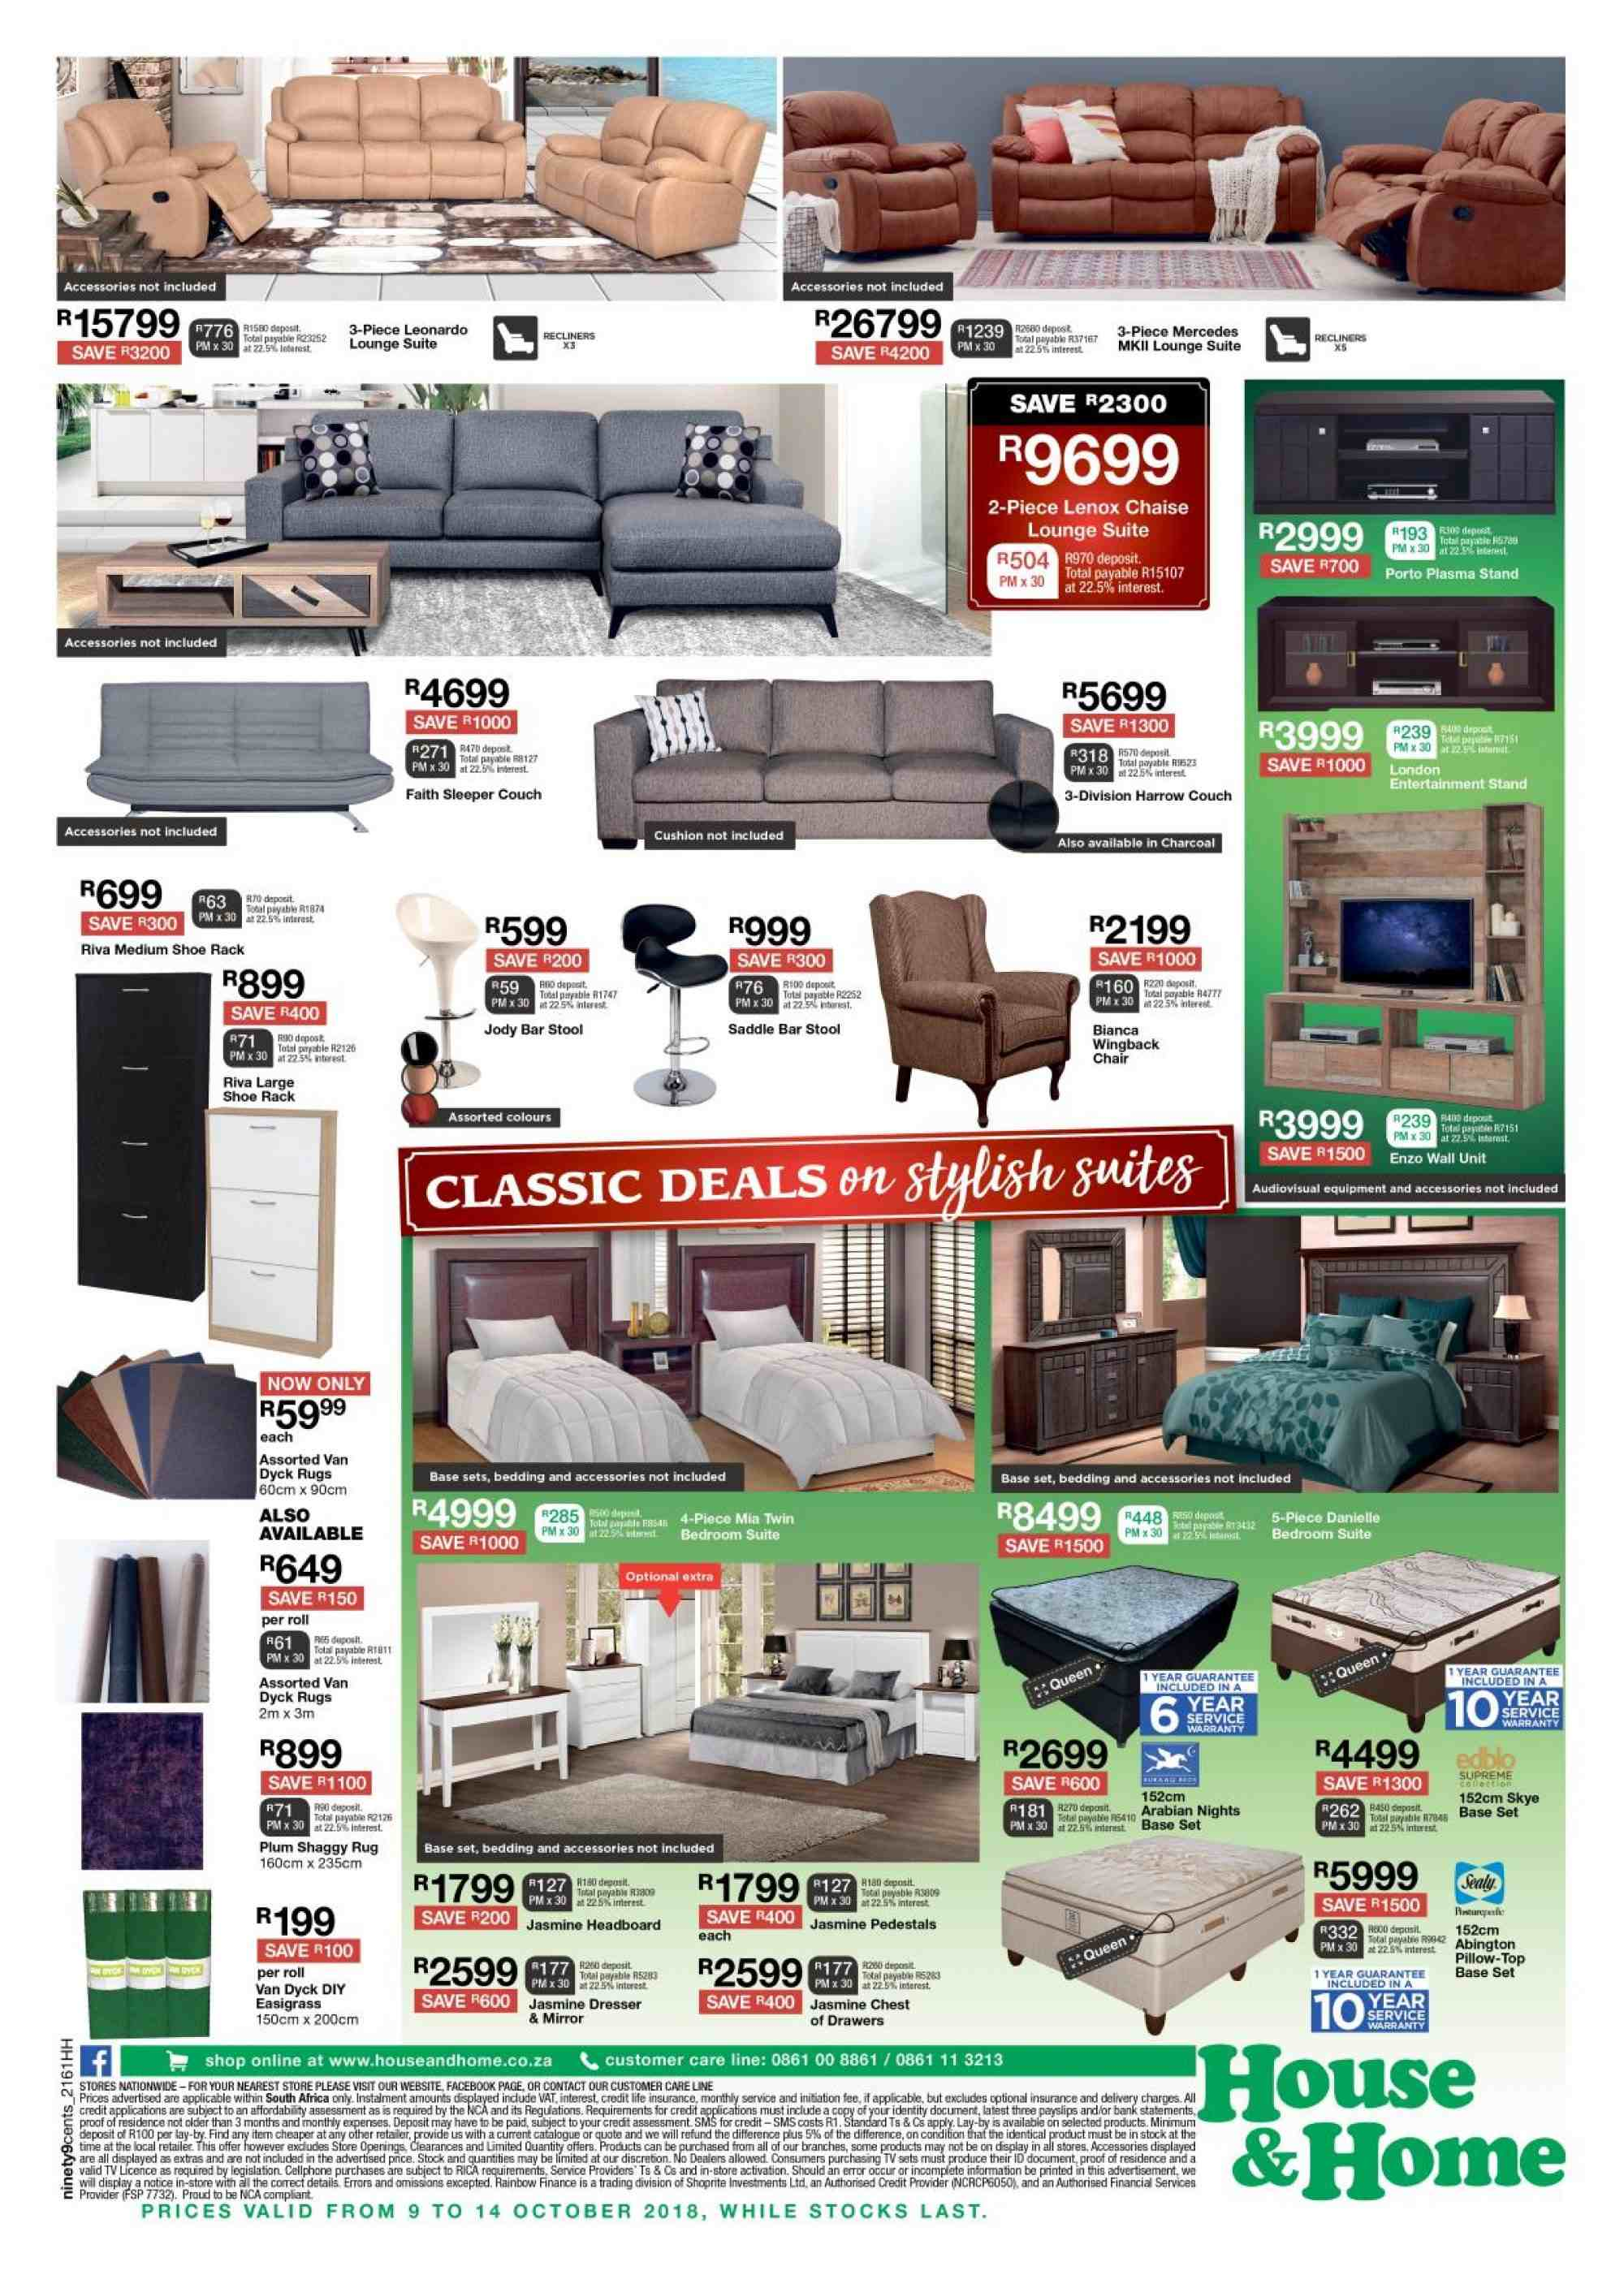 House & Home catalogue  - 10.09.2018 - 10.14.2018. Page 4.